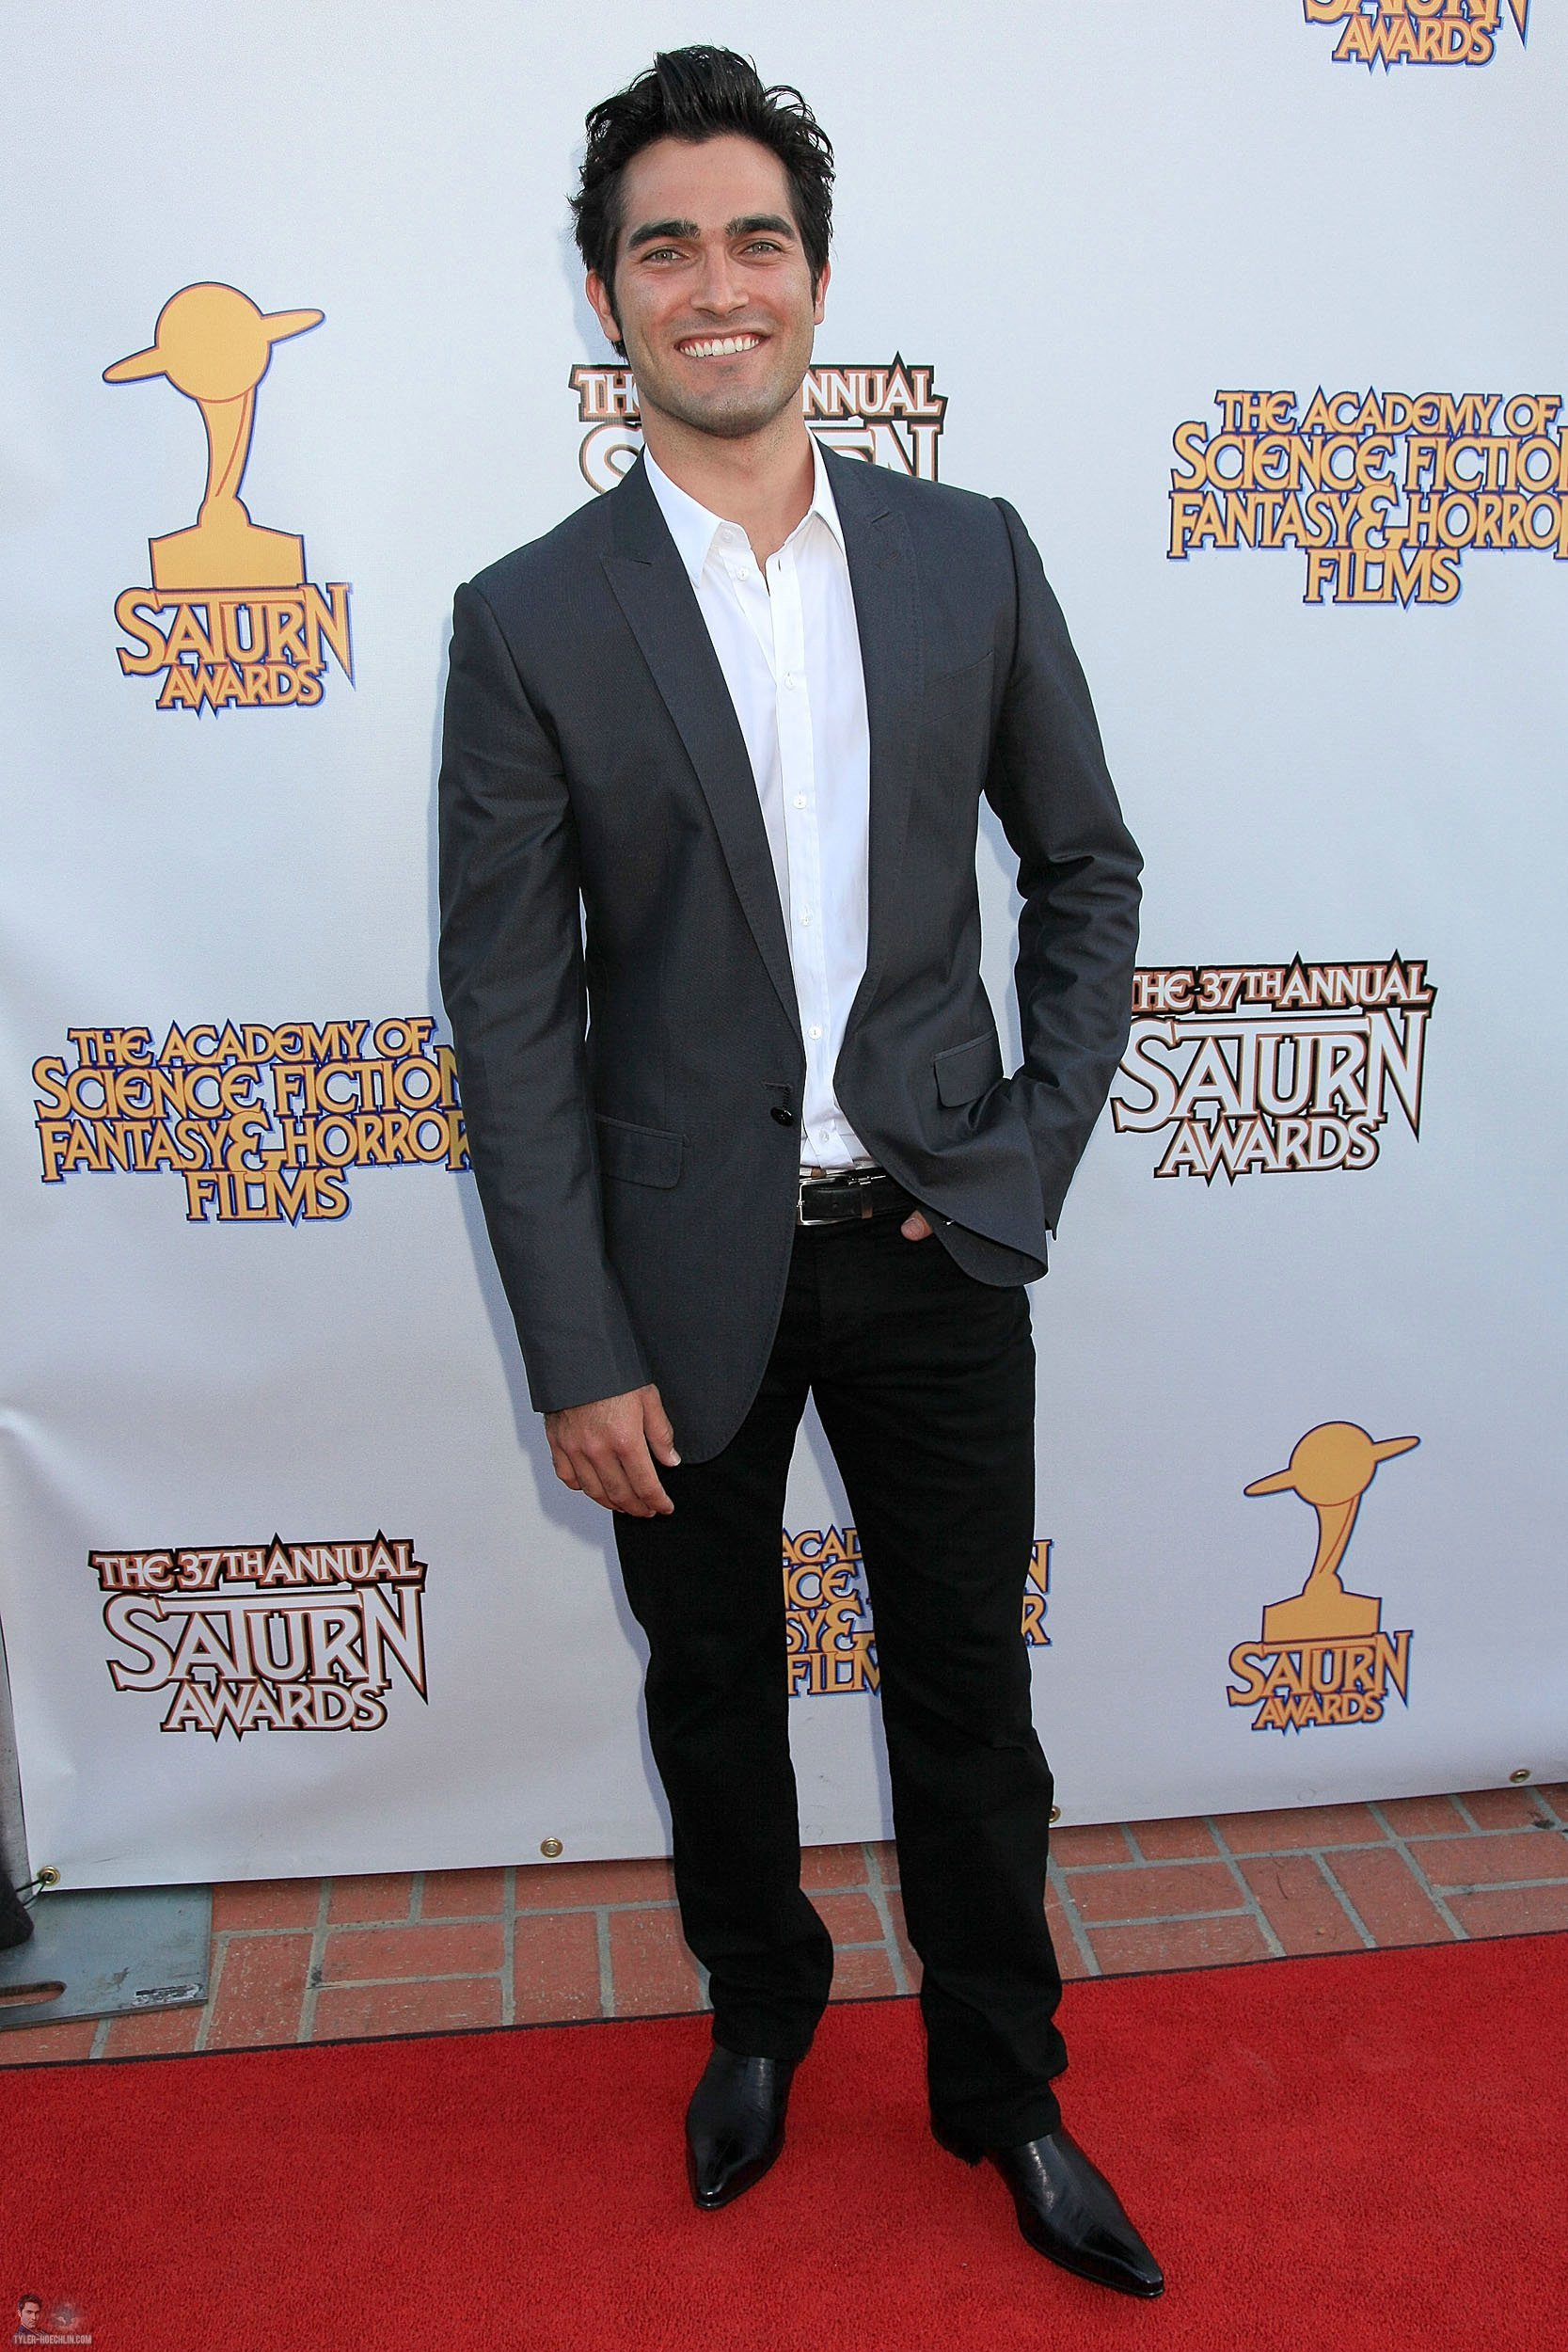 37th Annual Saturn Awards